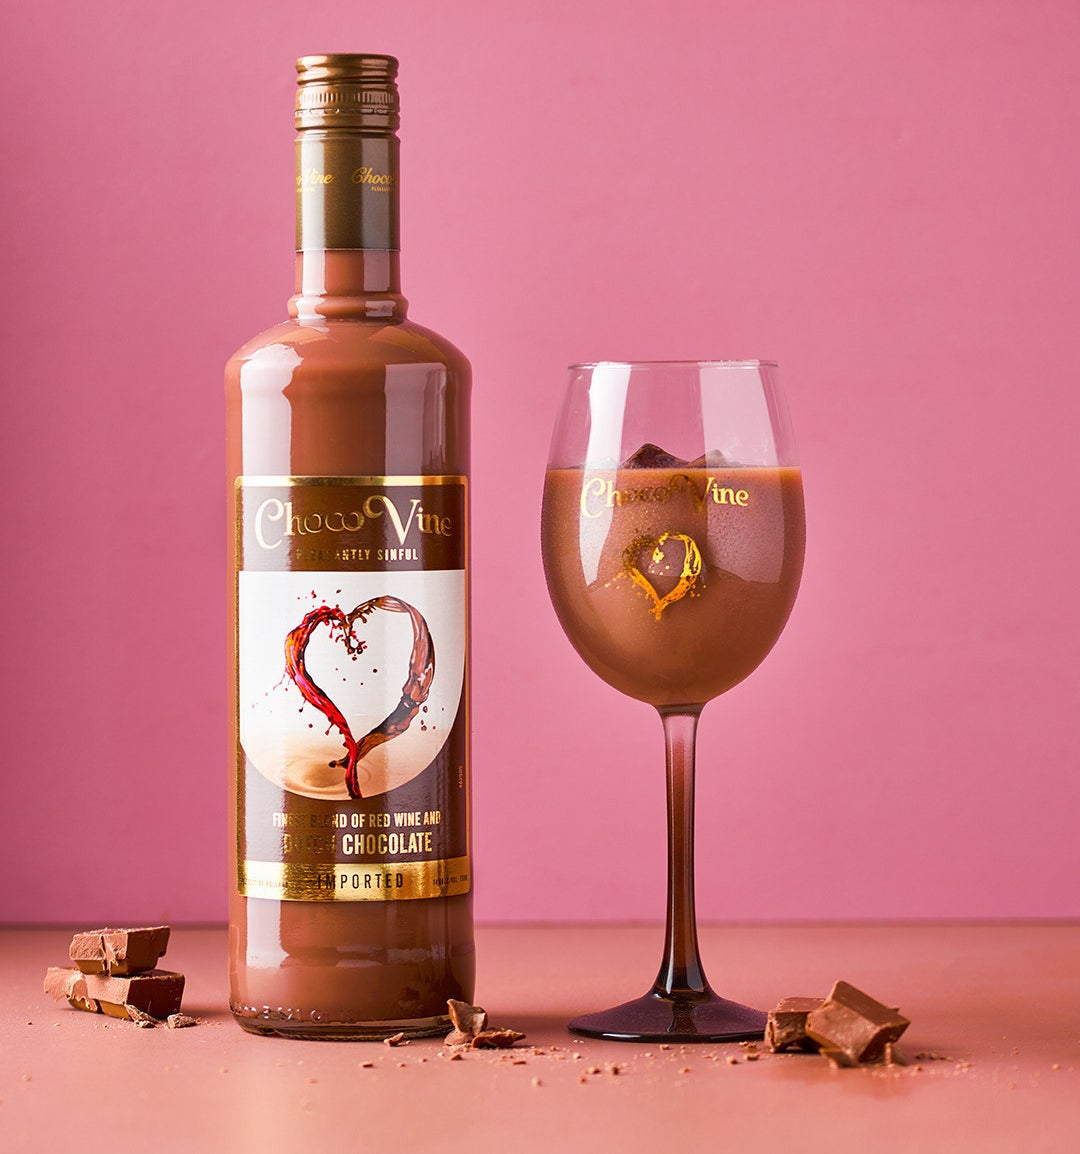 Bottle of ChocoVine next to a wine glass filled with the chocolate wine drink